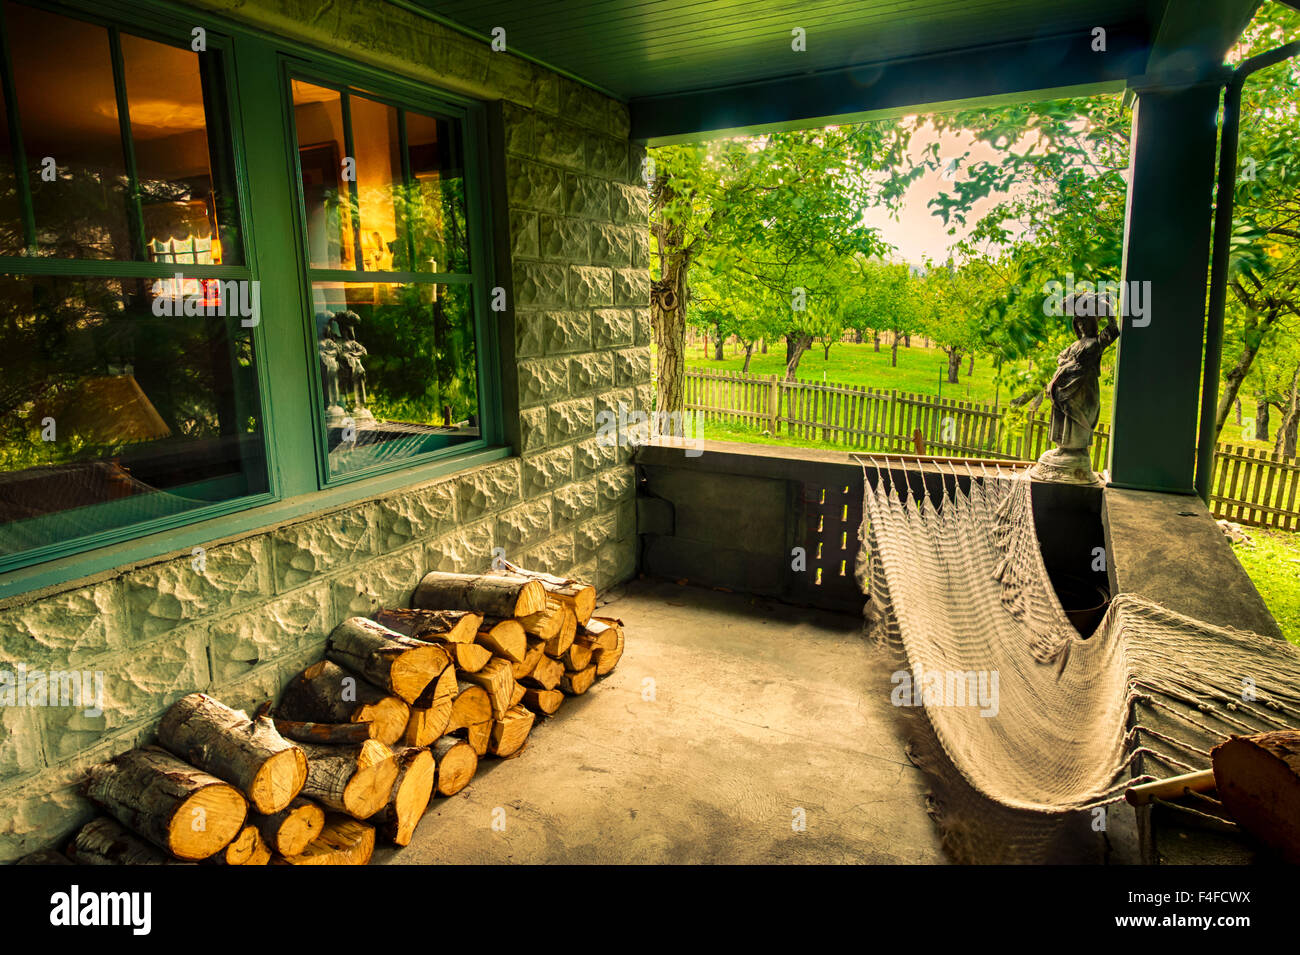 USA, Washington, Klickitat. Country cottage in wine country offers hammock on the porch with view of orchard and - Stock Image